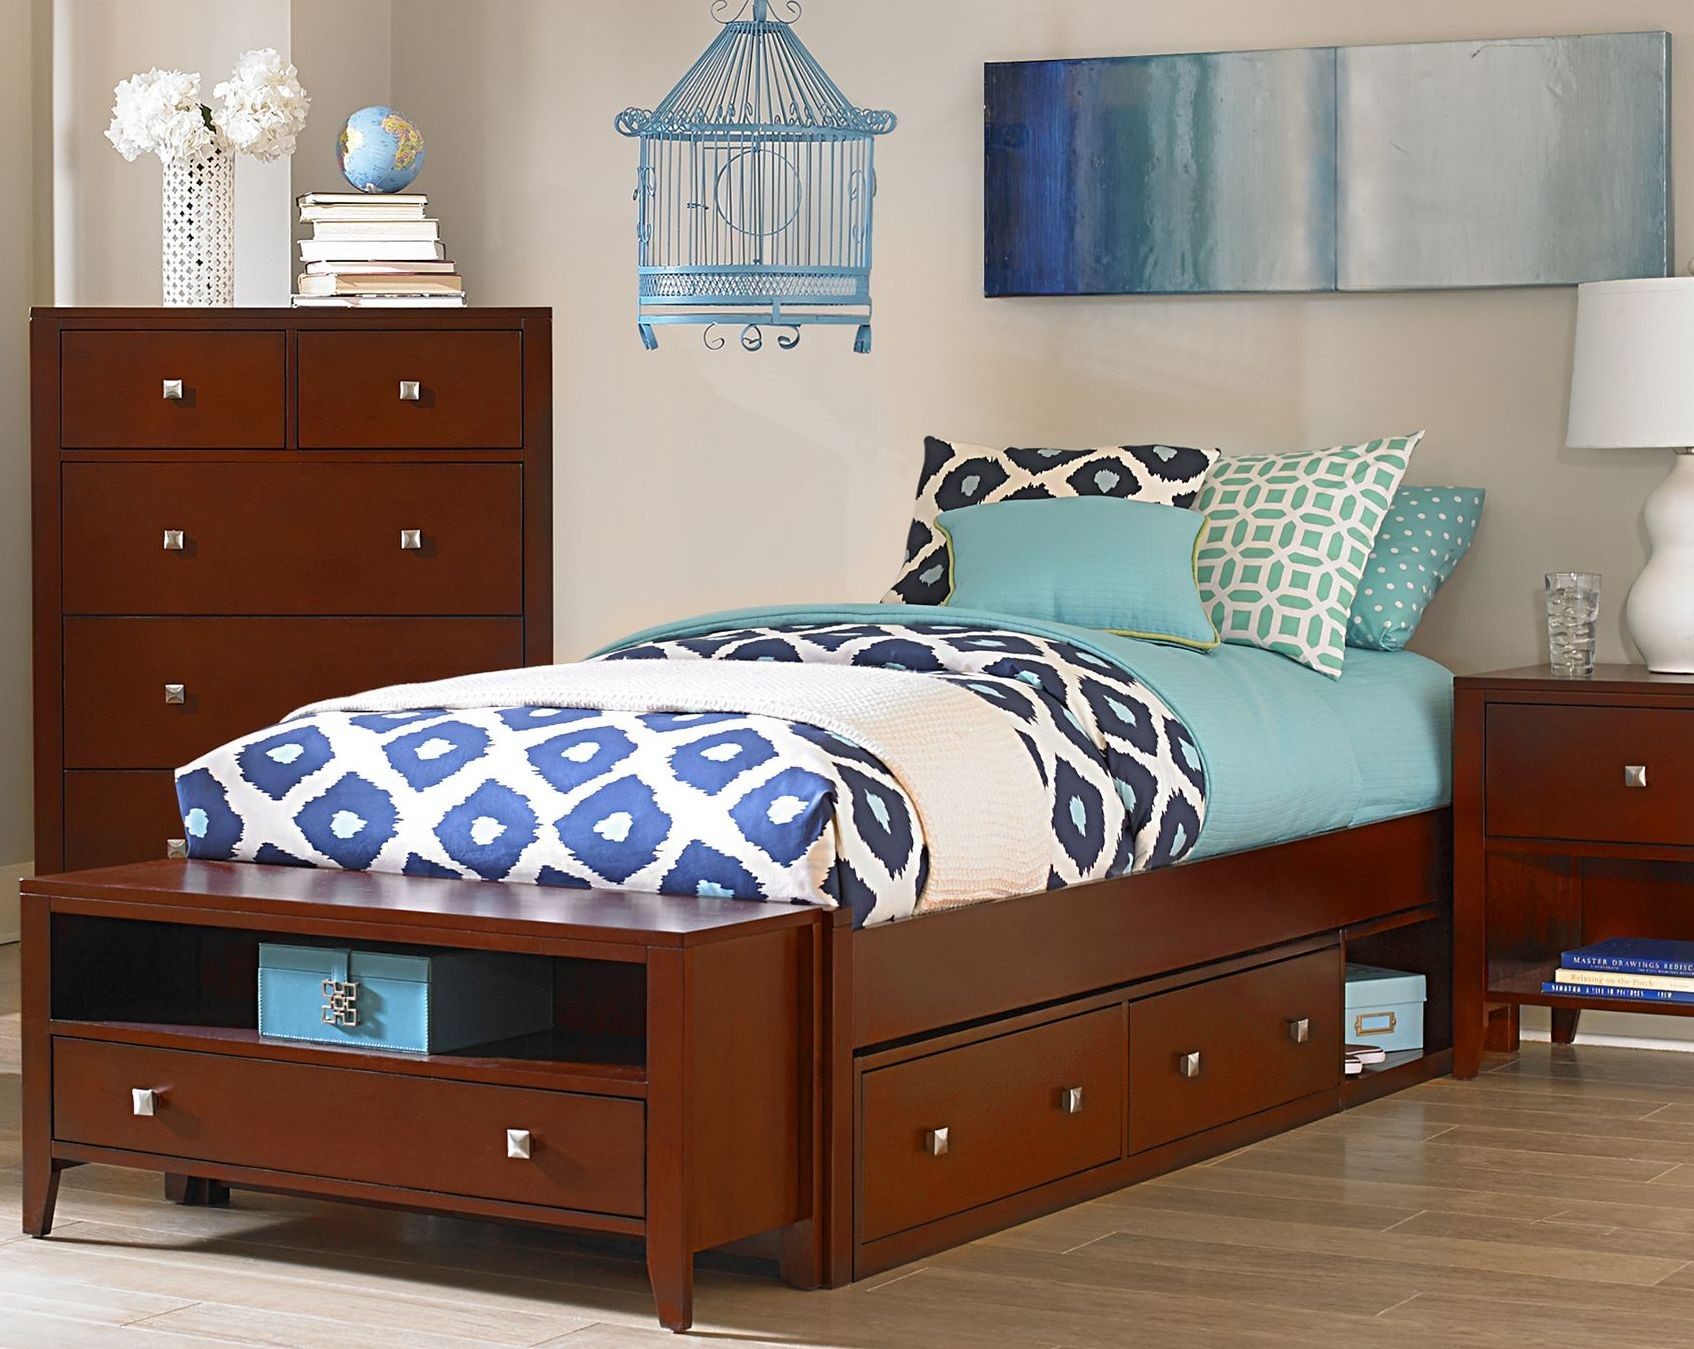 Pulse Cherry Twin Platform Bed With Storage from NE Kids